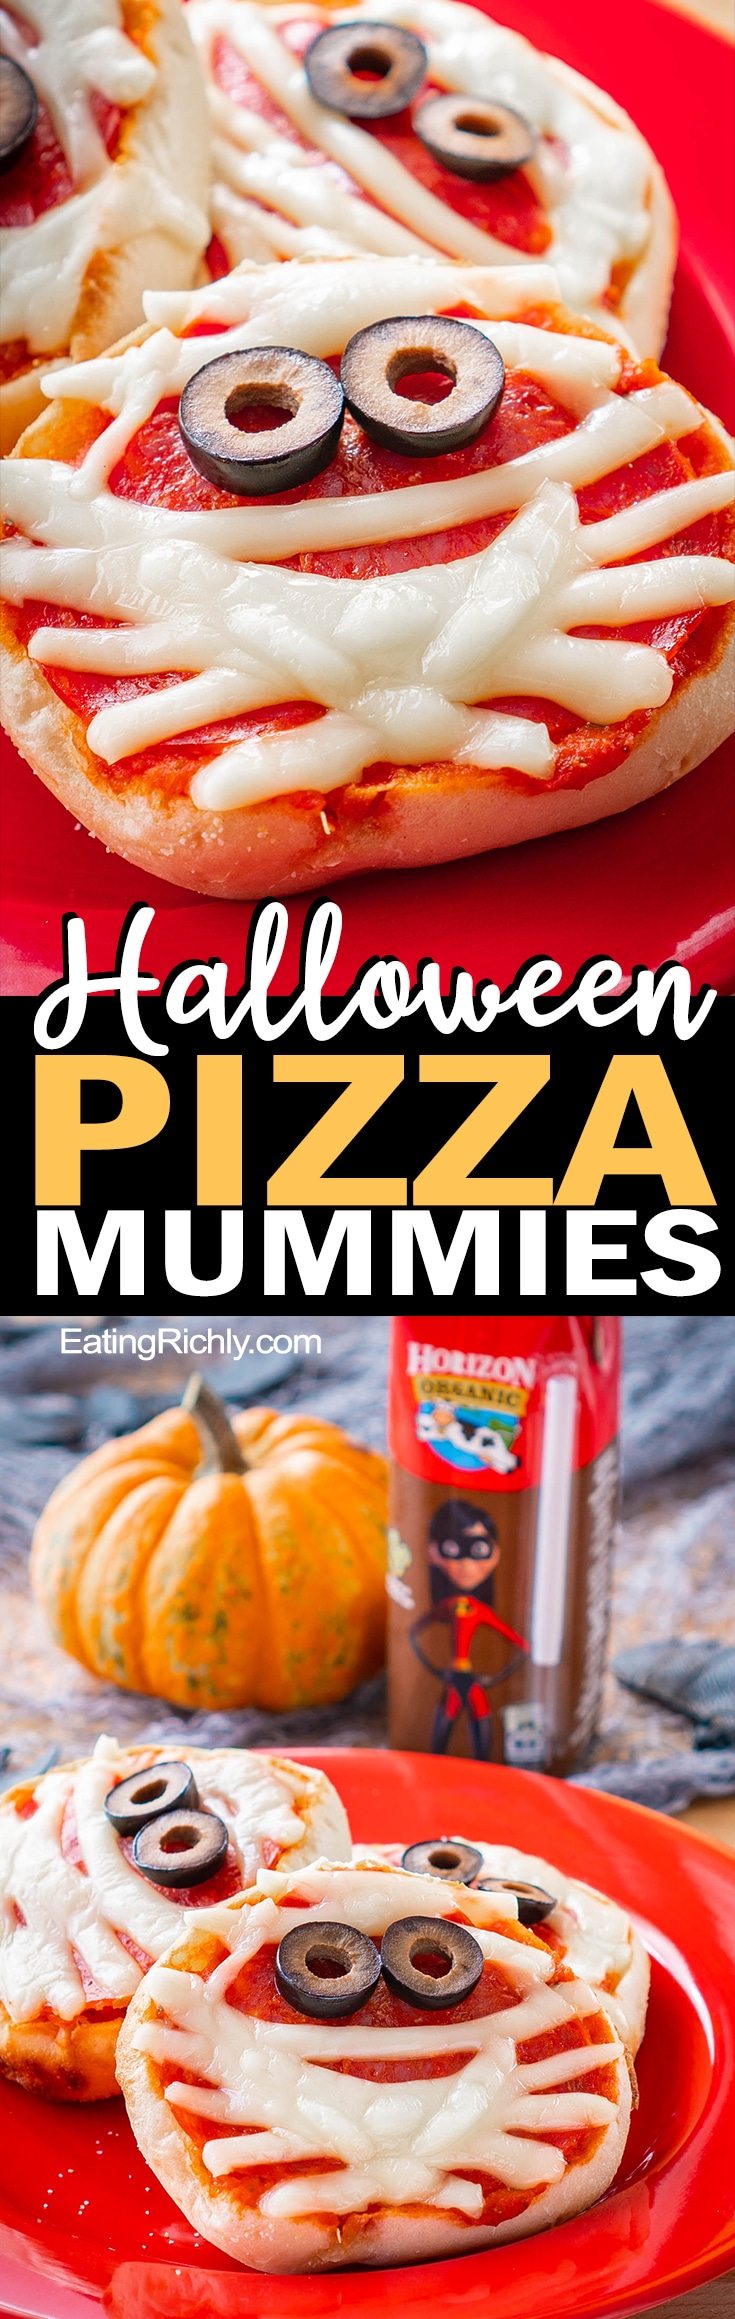 Kids will love turning string cheese and an English muffin into this cute Halloween Pizza Mummy. It's so easy, even toddlers can make it themselves!